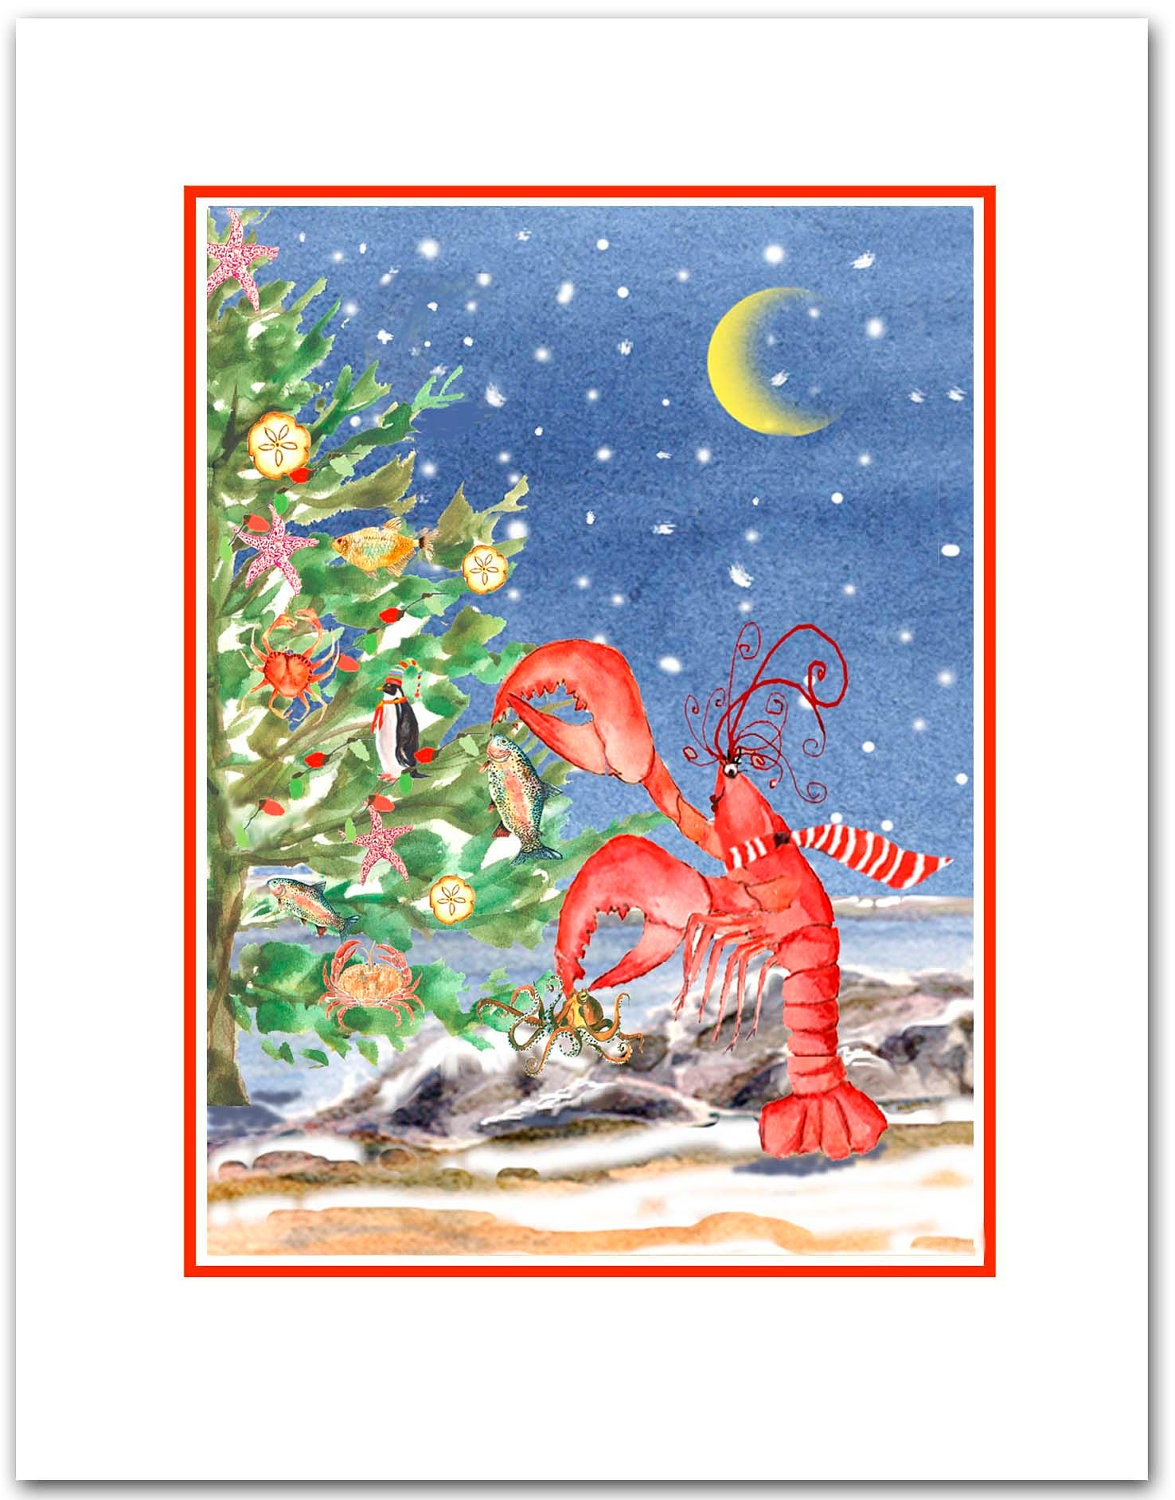 Lobster trimming the tree Christmas cards. set of 10. boxed